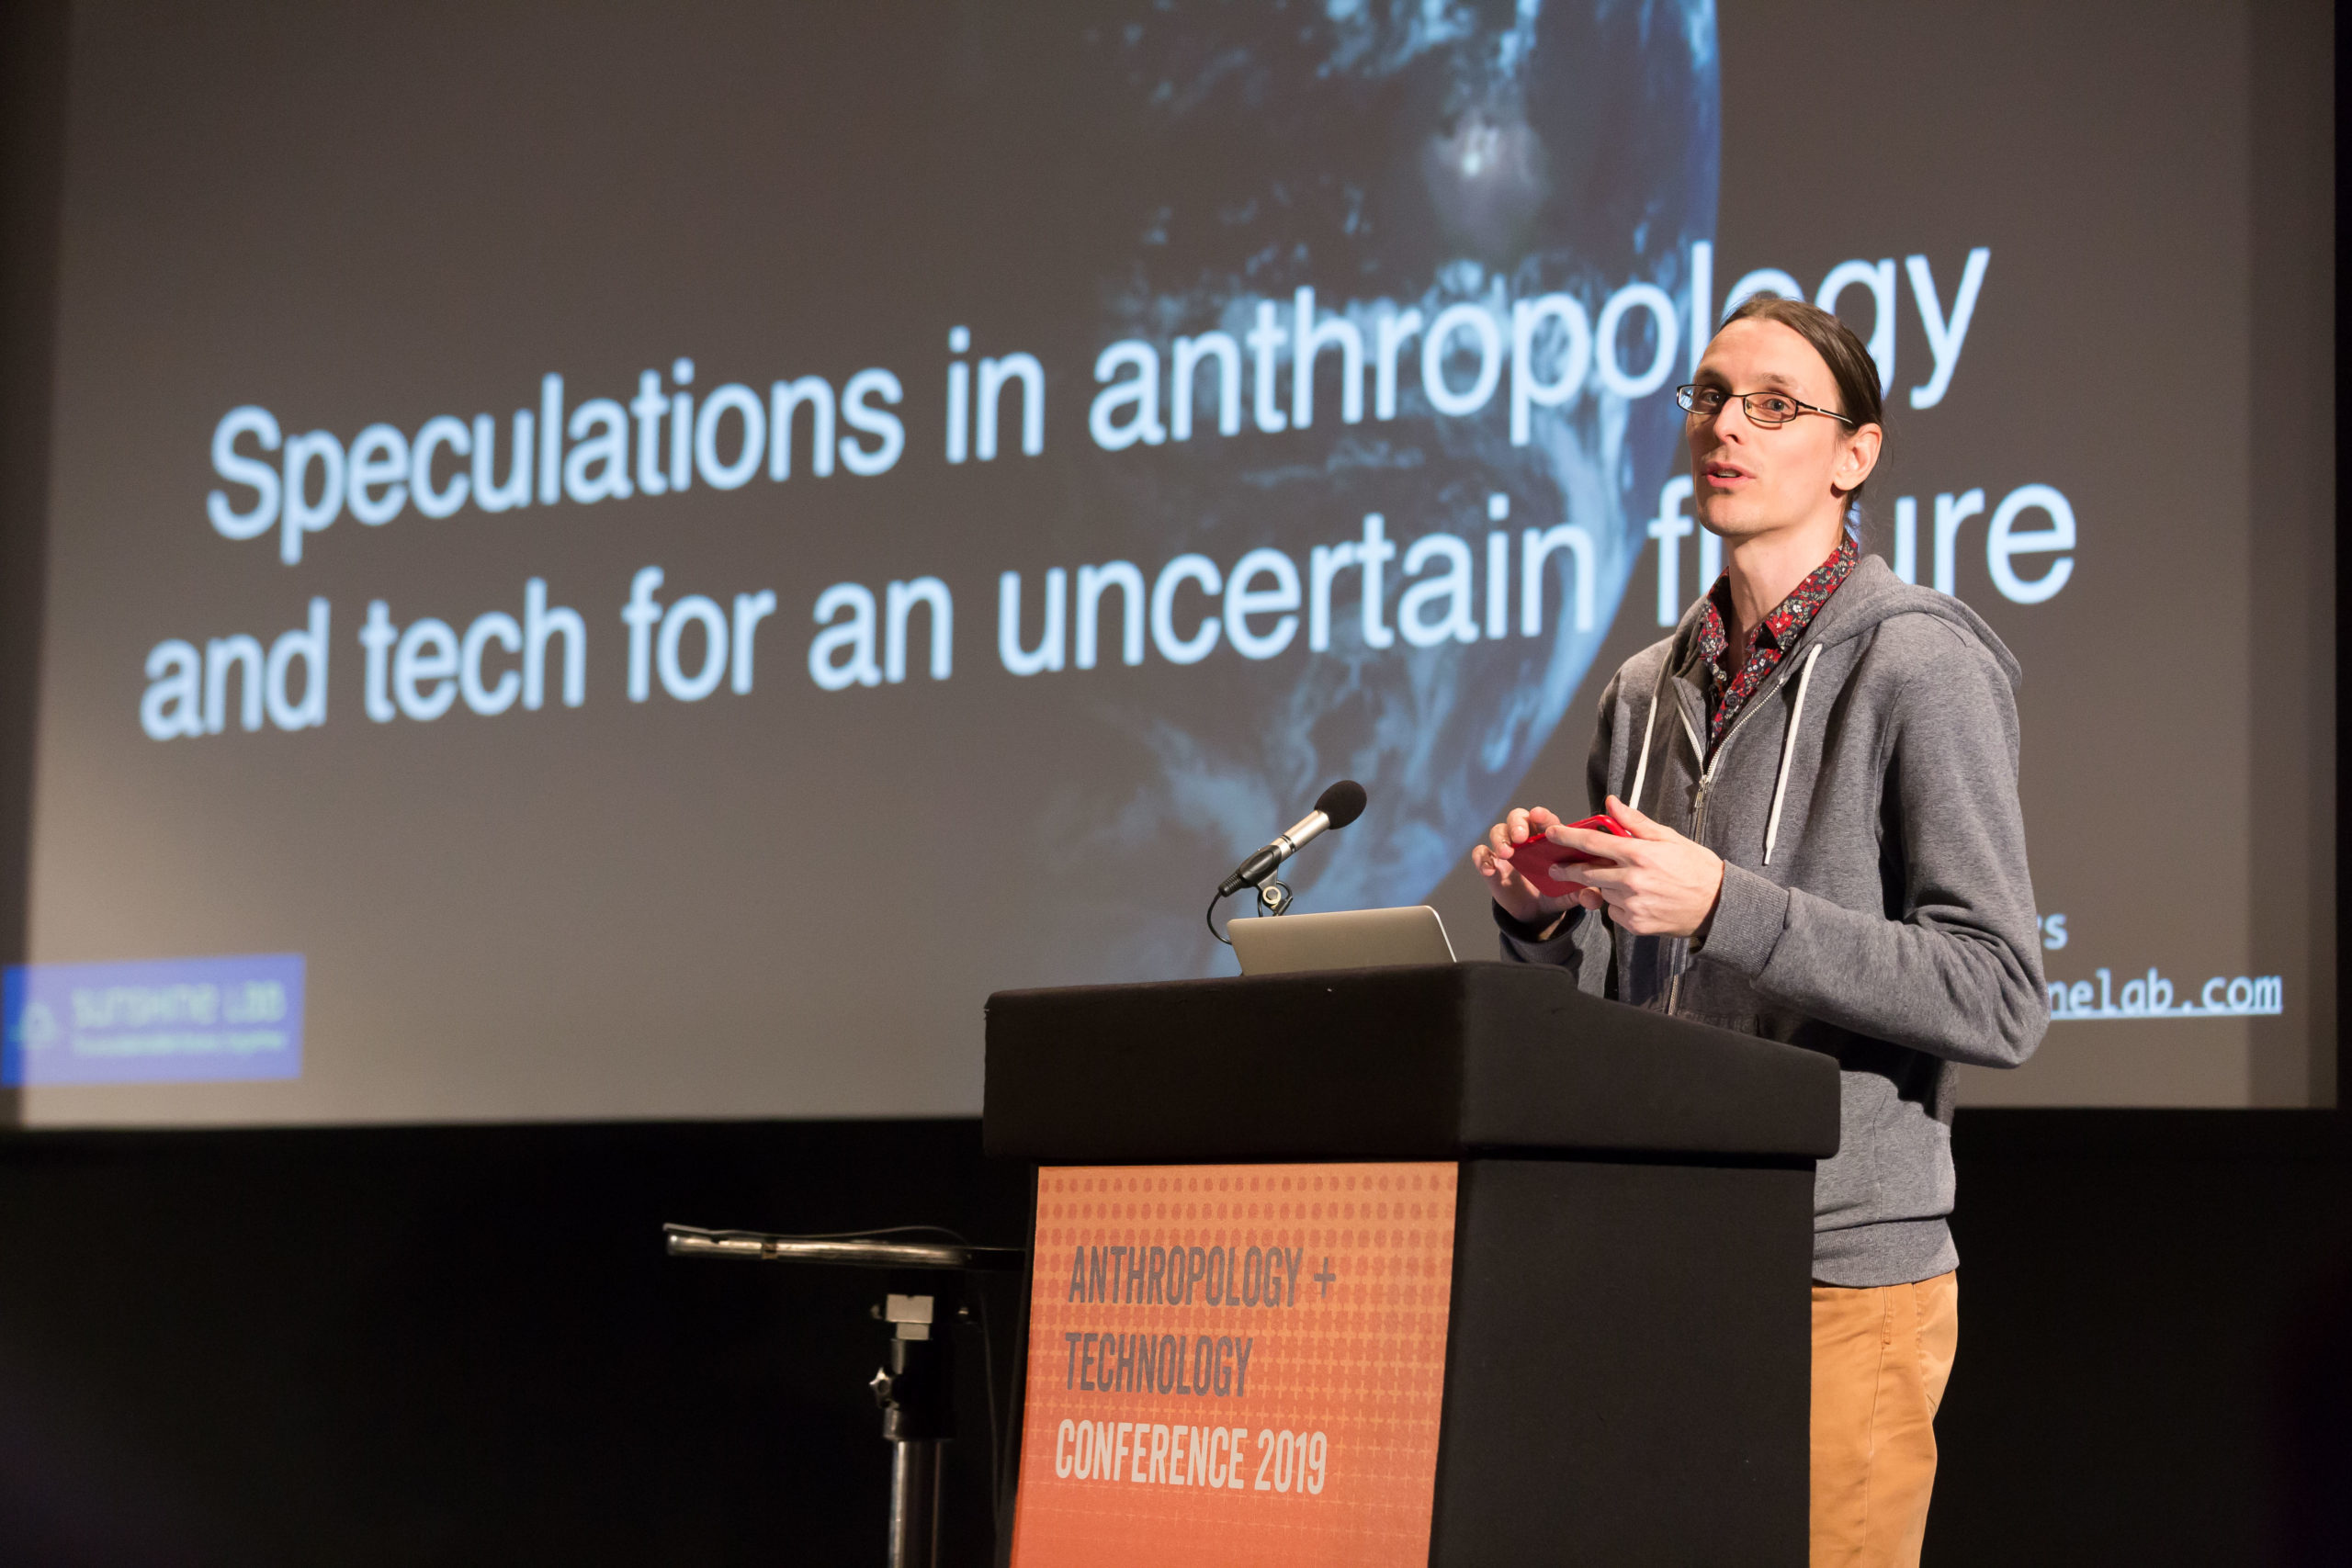 Bristol's Anthropology and Technology Conference goes virtual for 2020